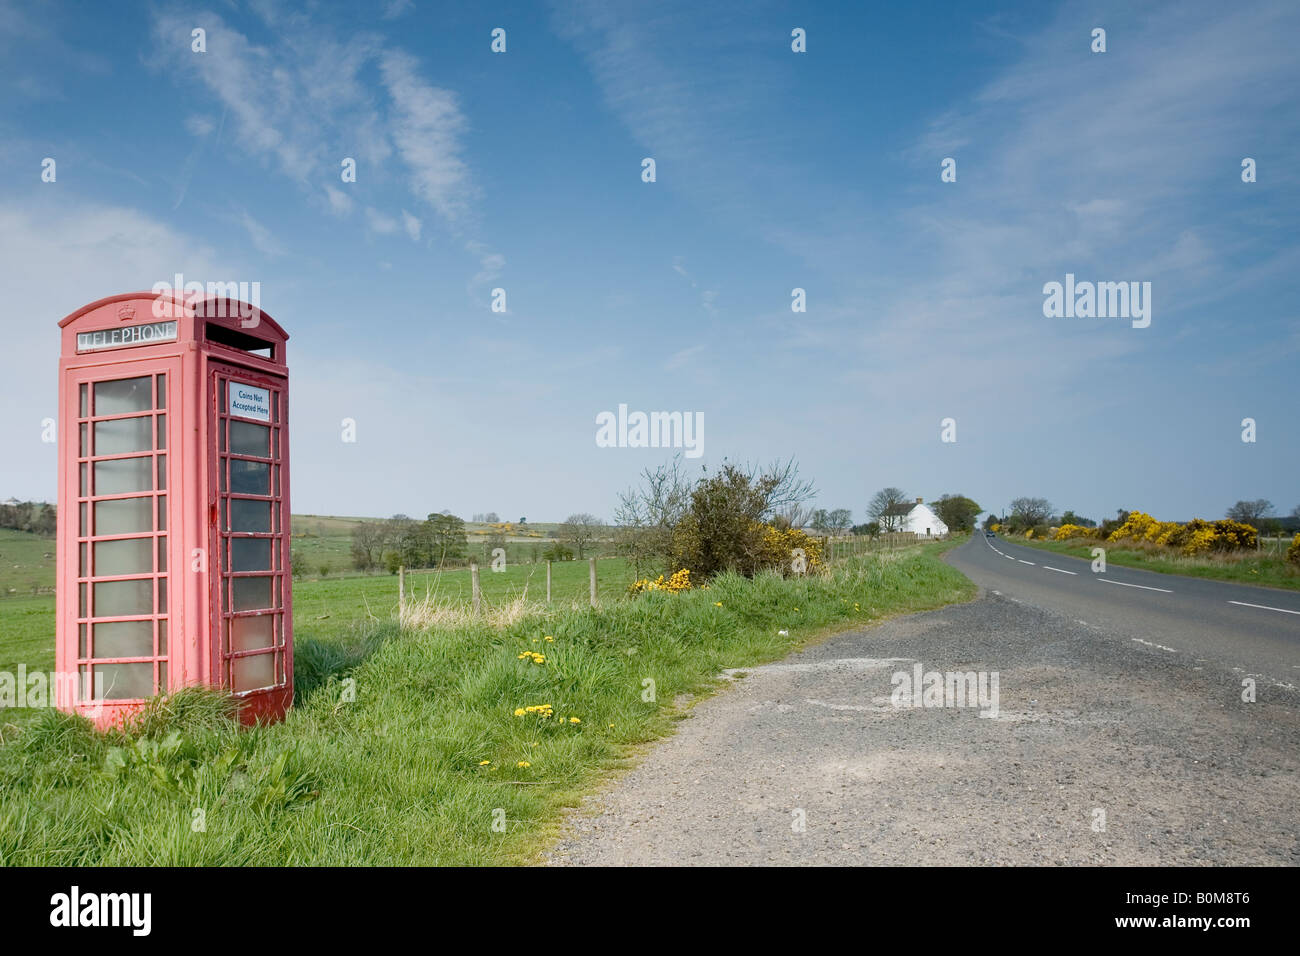 Soon to be an icon of the past as the BT announces the removal of 14 000 red phone boxes from across the country. - Stock Image